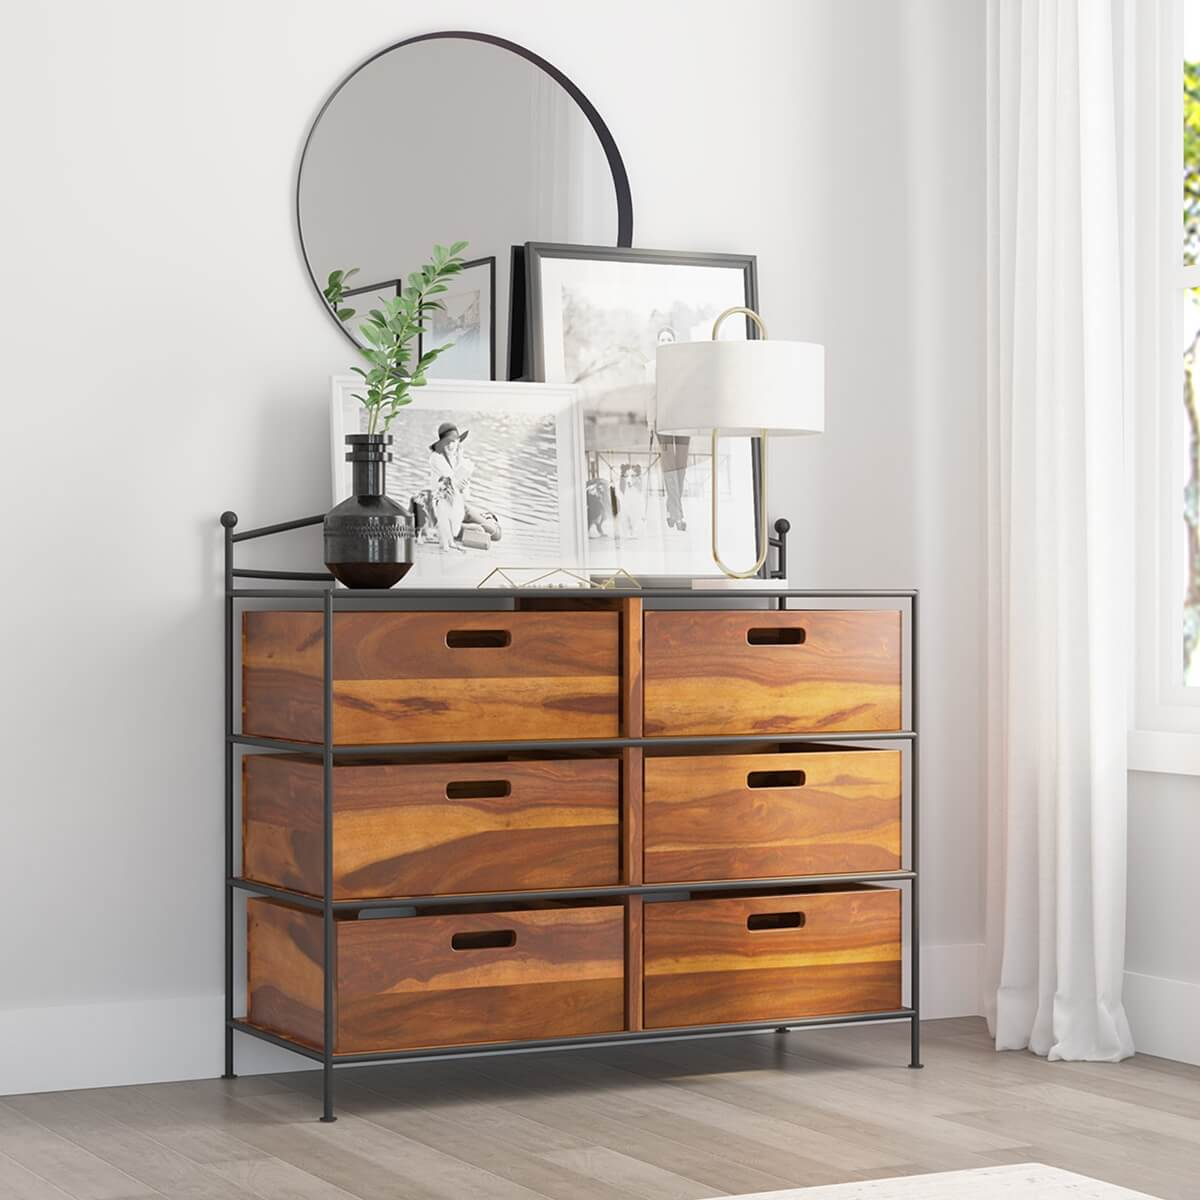 Nome Industrial Iron And Solid Wood 6 Drawer Bedroom Dresser